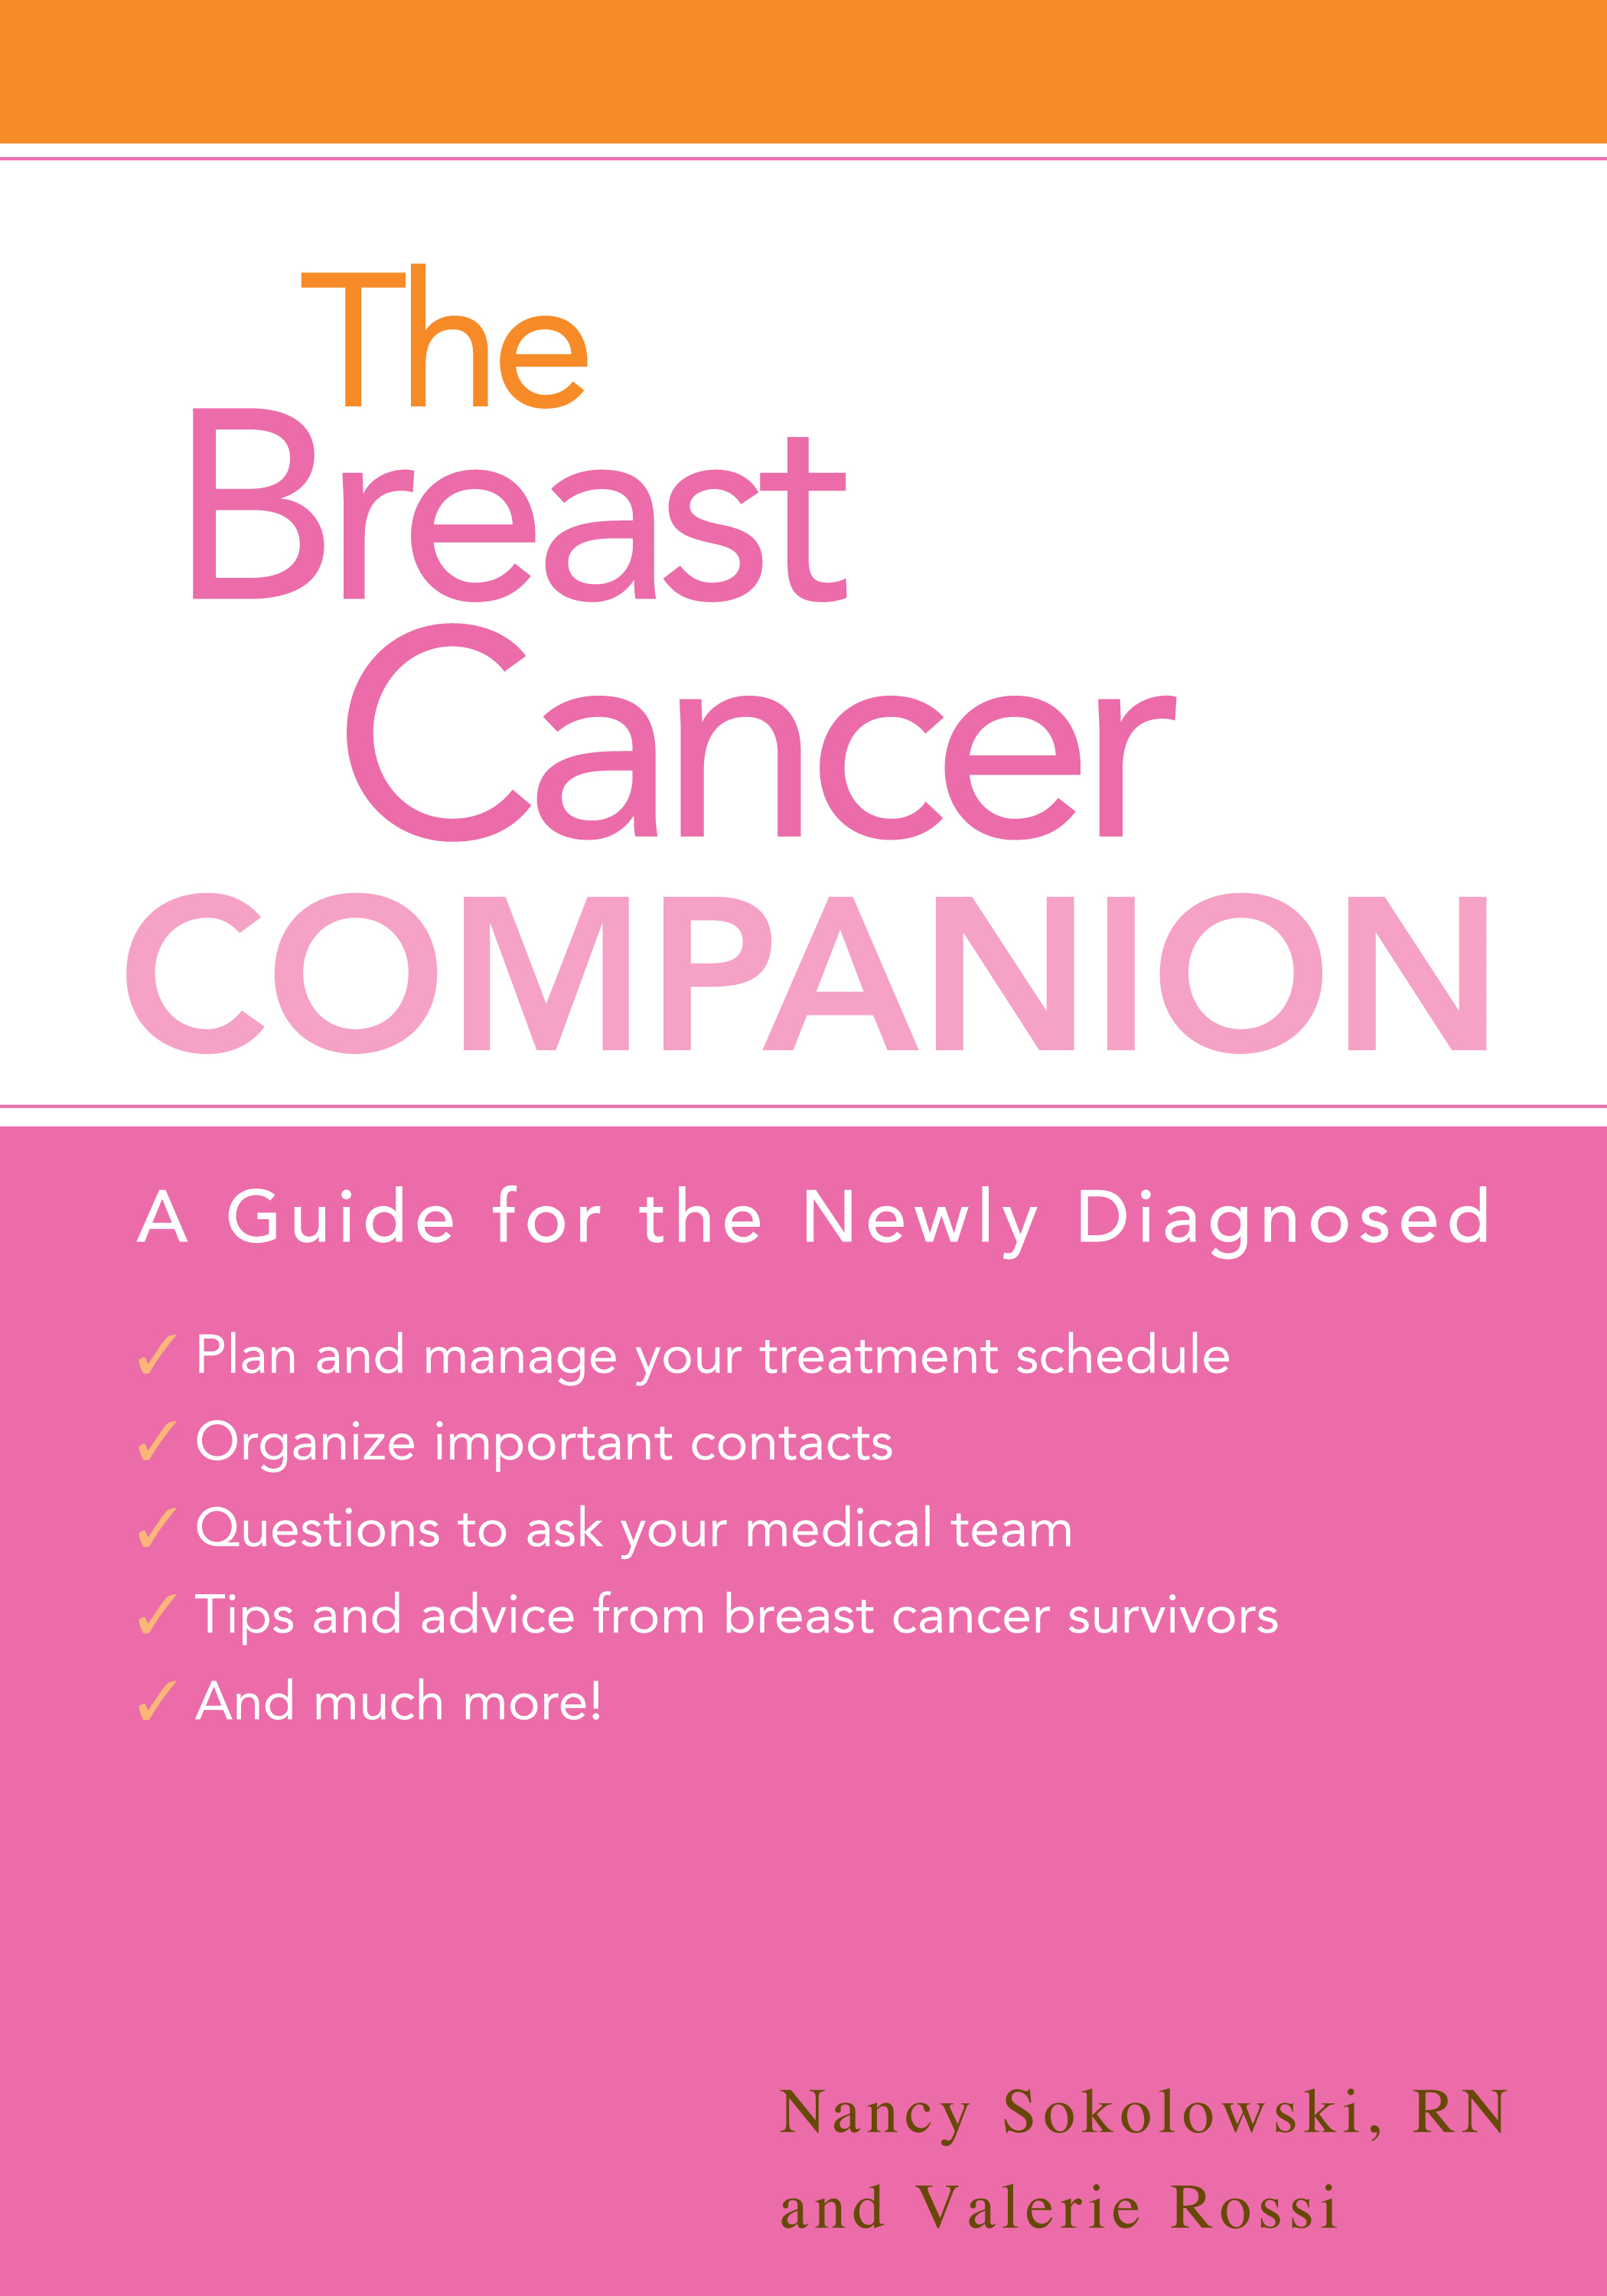 The Breast Cancer Companion